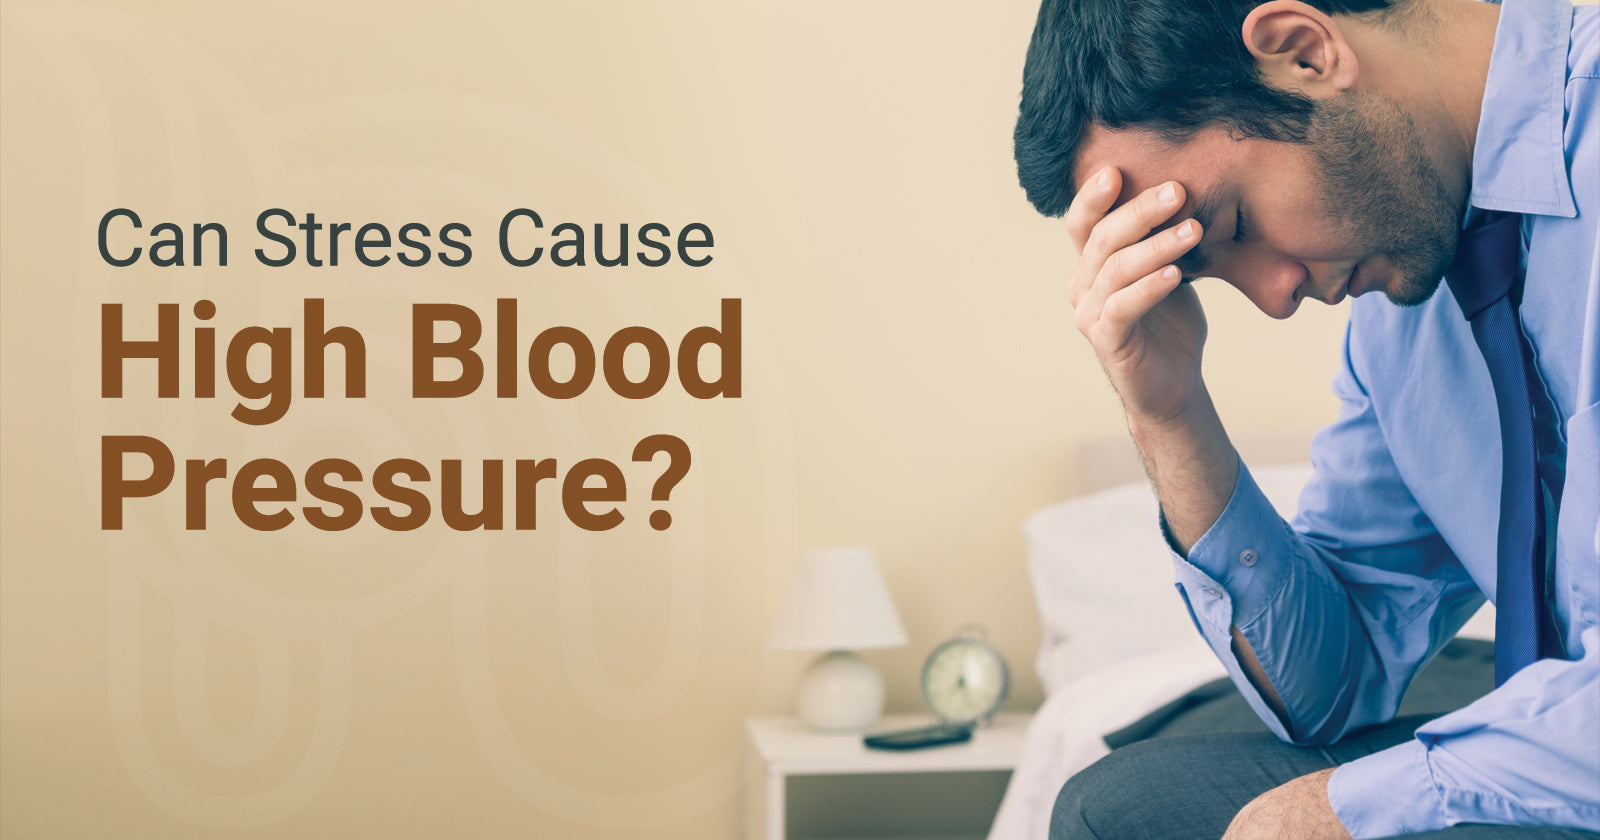 Can Stress Cause High Blood Pressure?